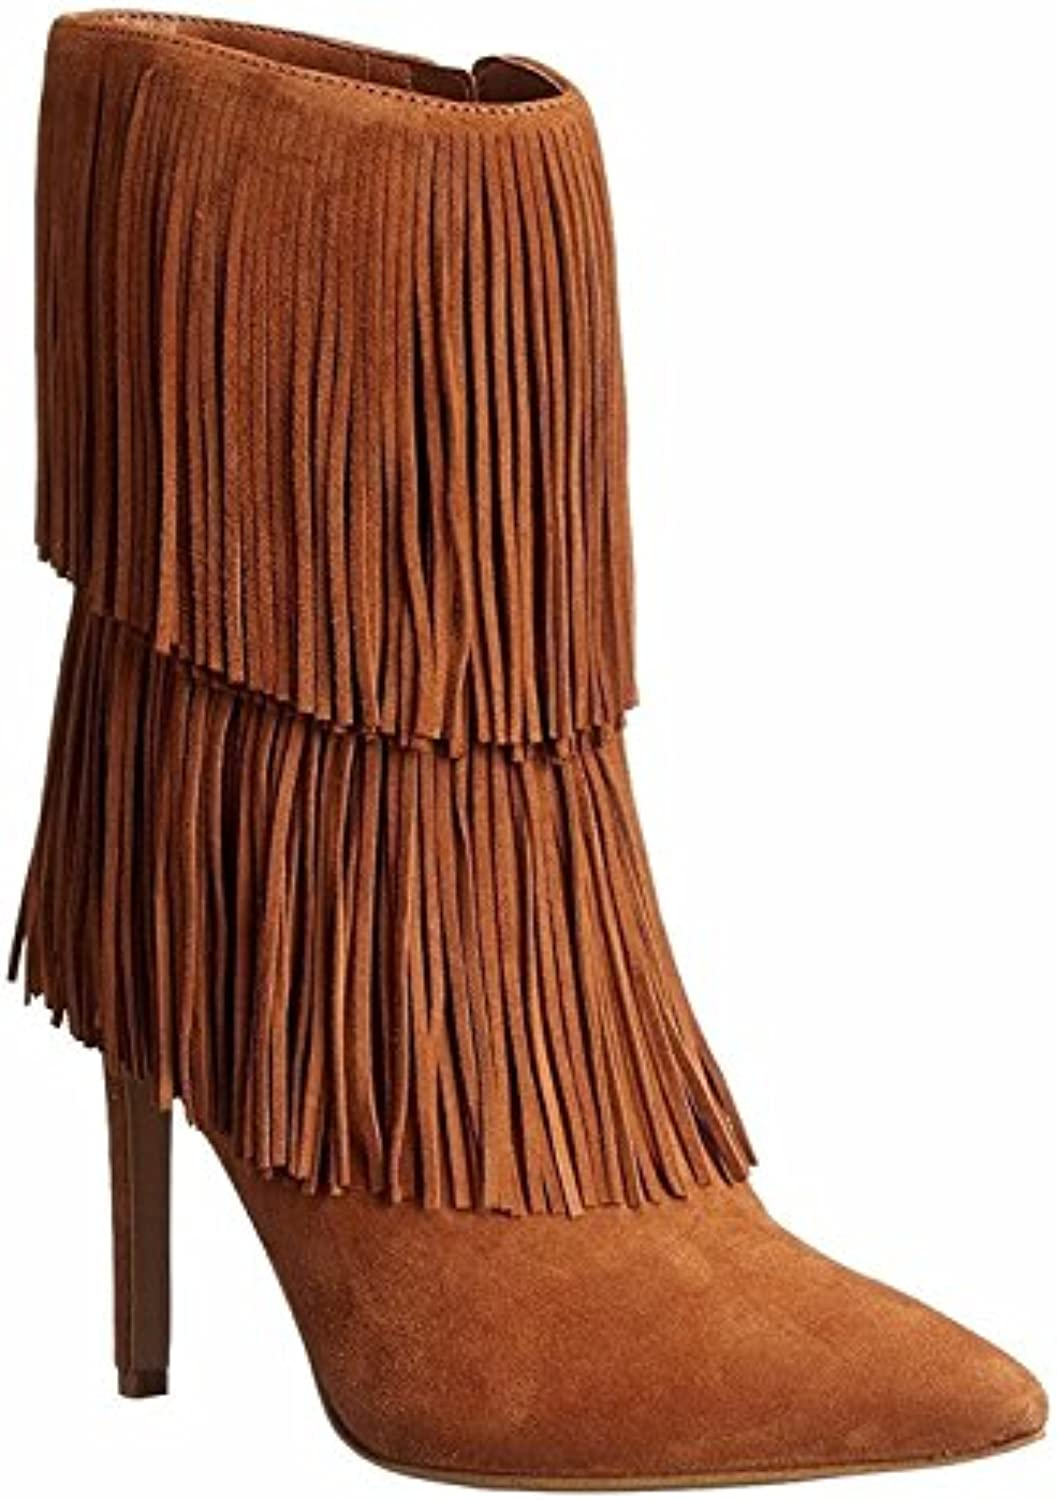 8bd95dd2114 GAIHU Ladies 29129 stiletto ankles high heel boots ankles letter head  B07D6B9FDC of shoes black suede tassel brown spring of the fall.